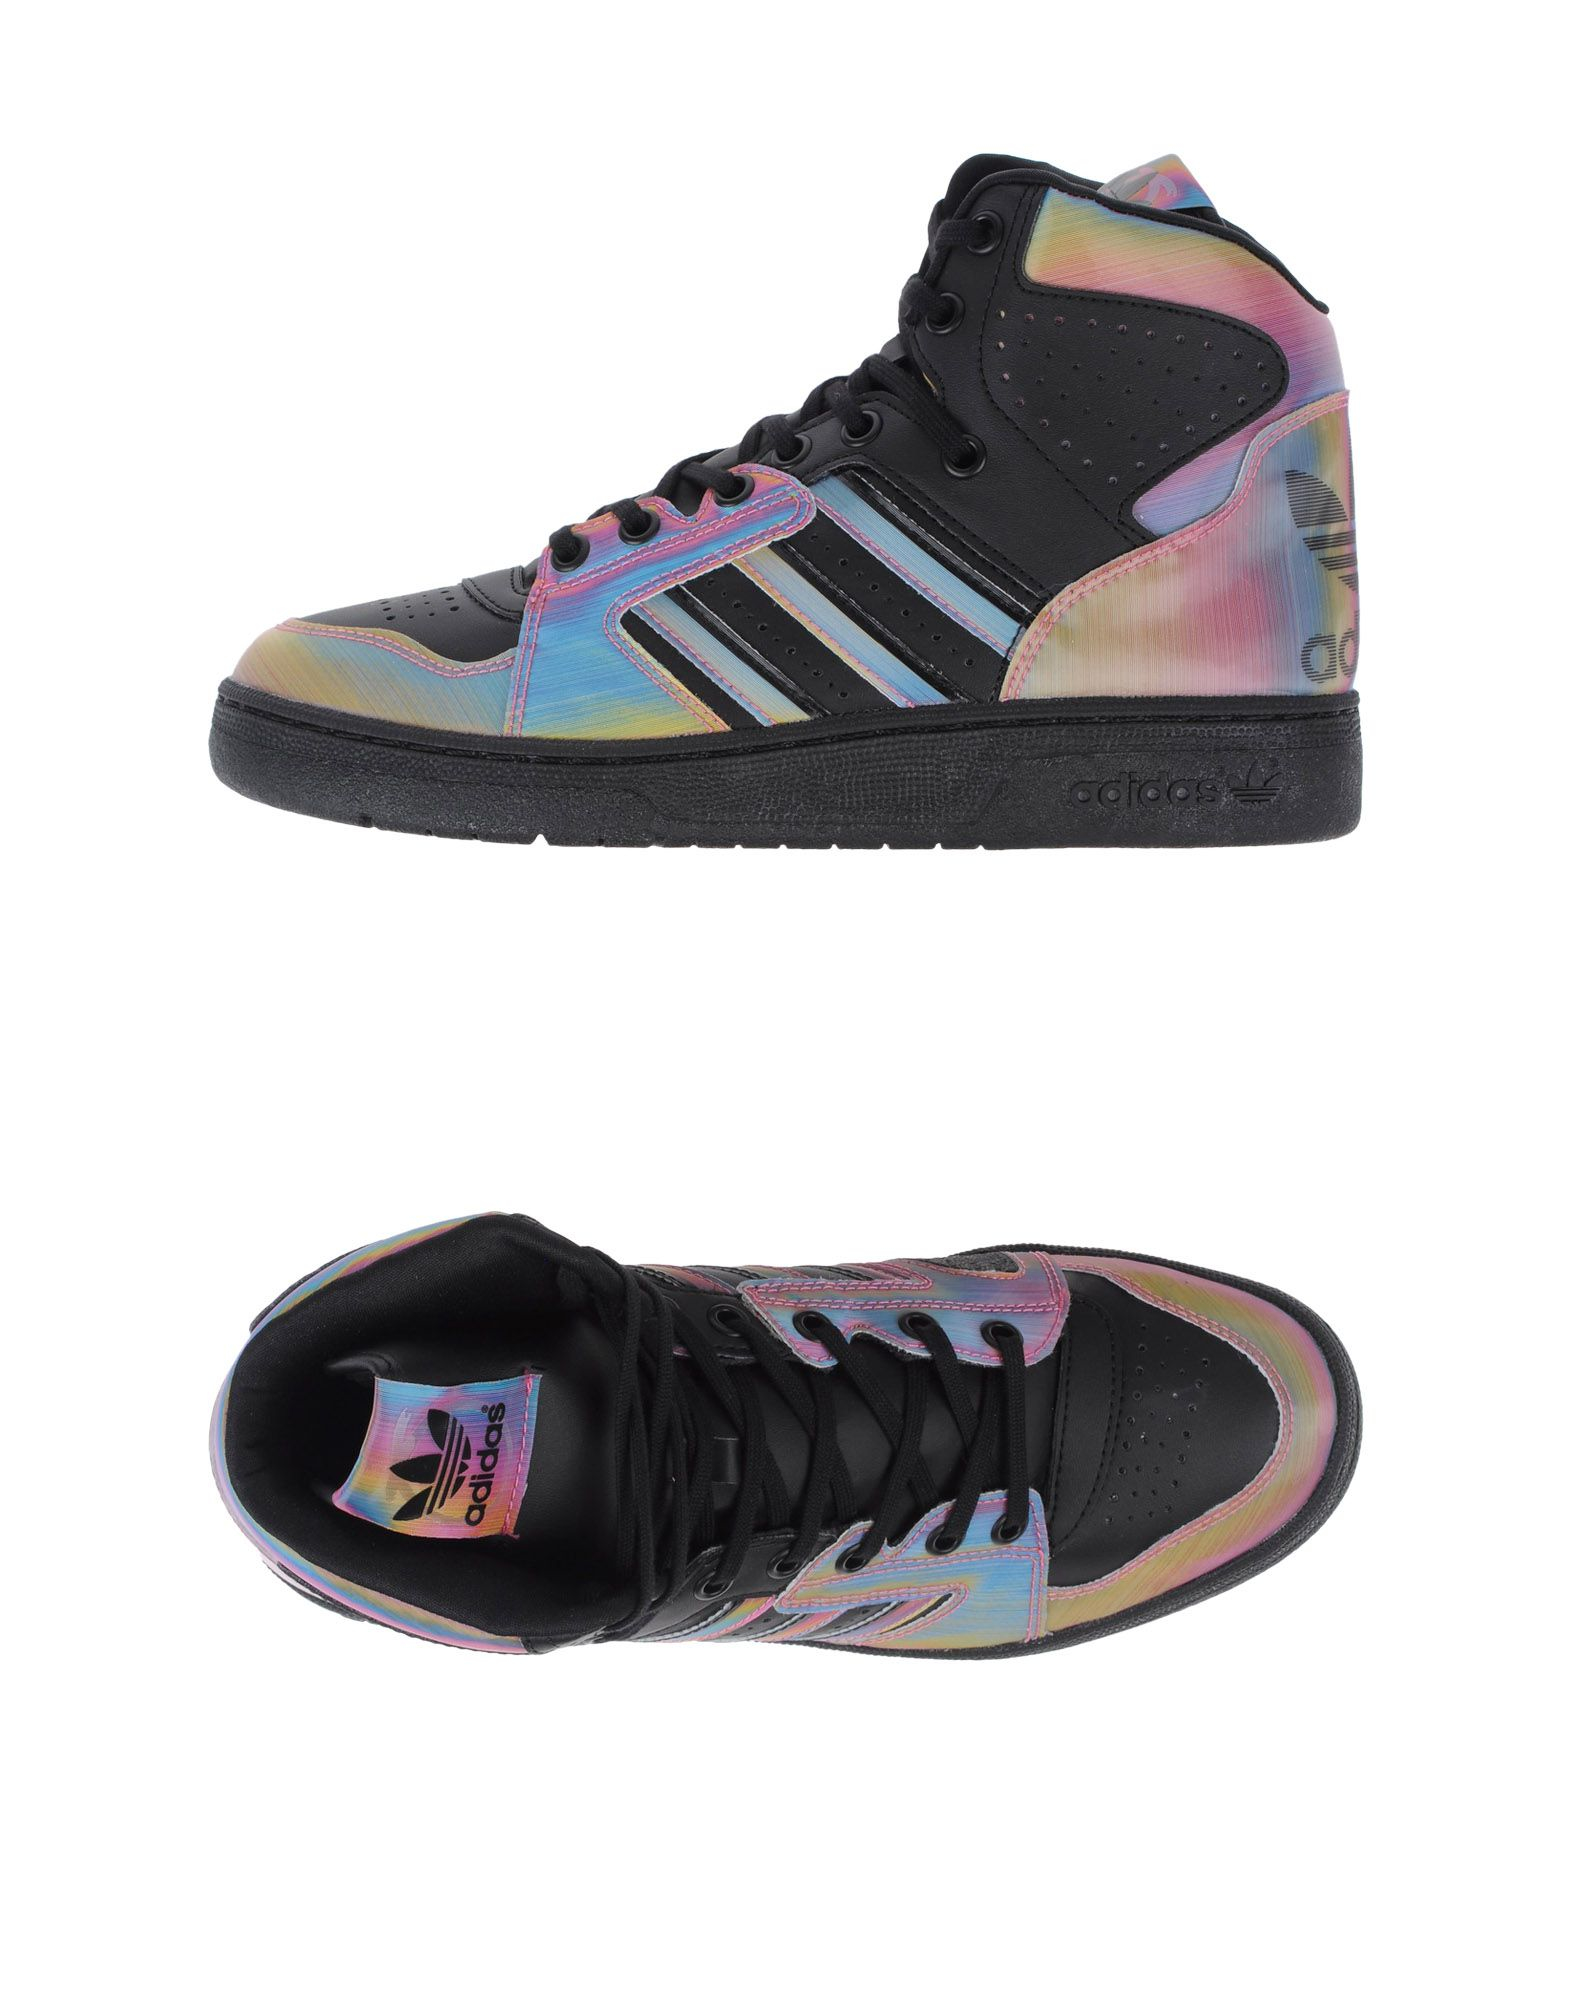 Lyst - Adidas Originals High-tops & Trainers in Black